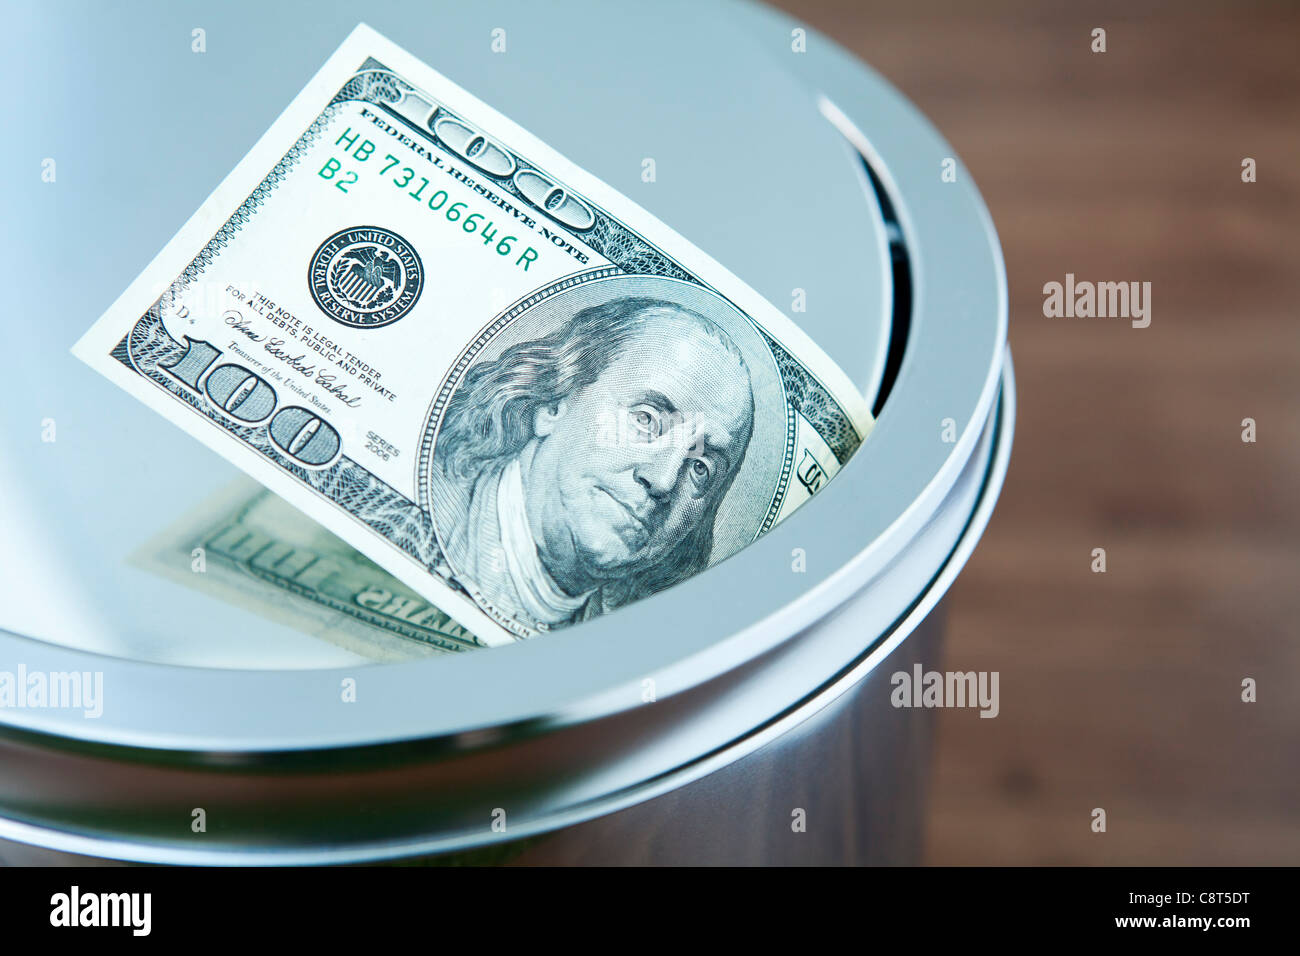 Hundred dollar bill in garbage can - Stock Image